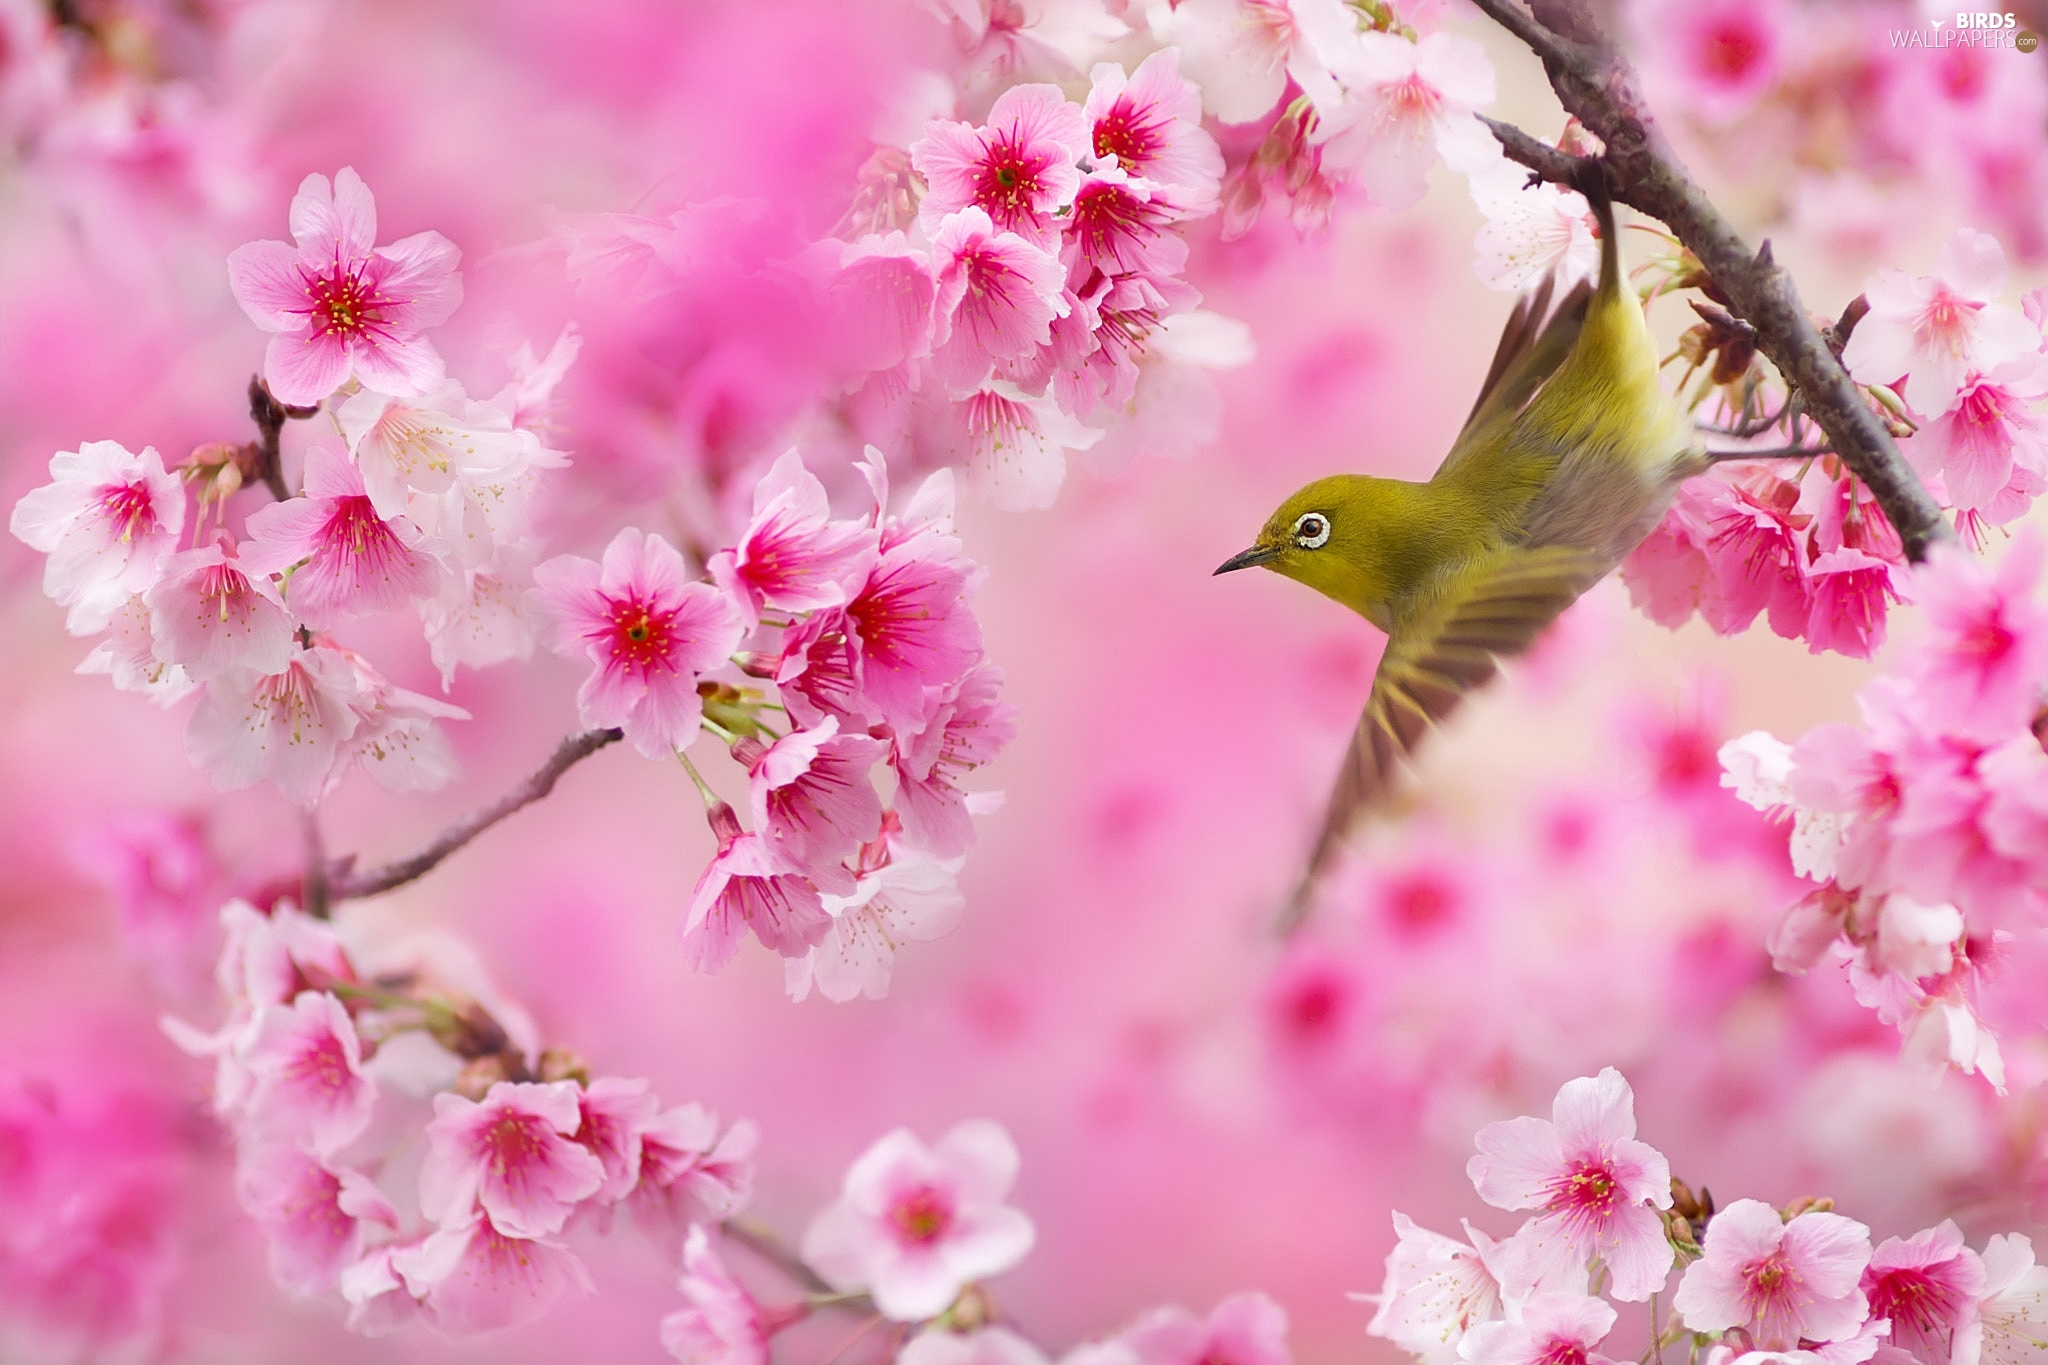 Flourished, Bird, Pink, Flowers, Twigs, Zosterops